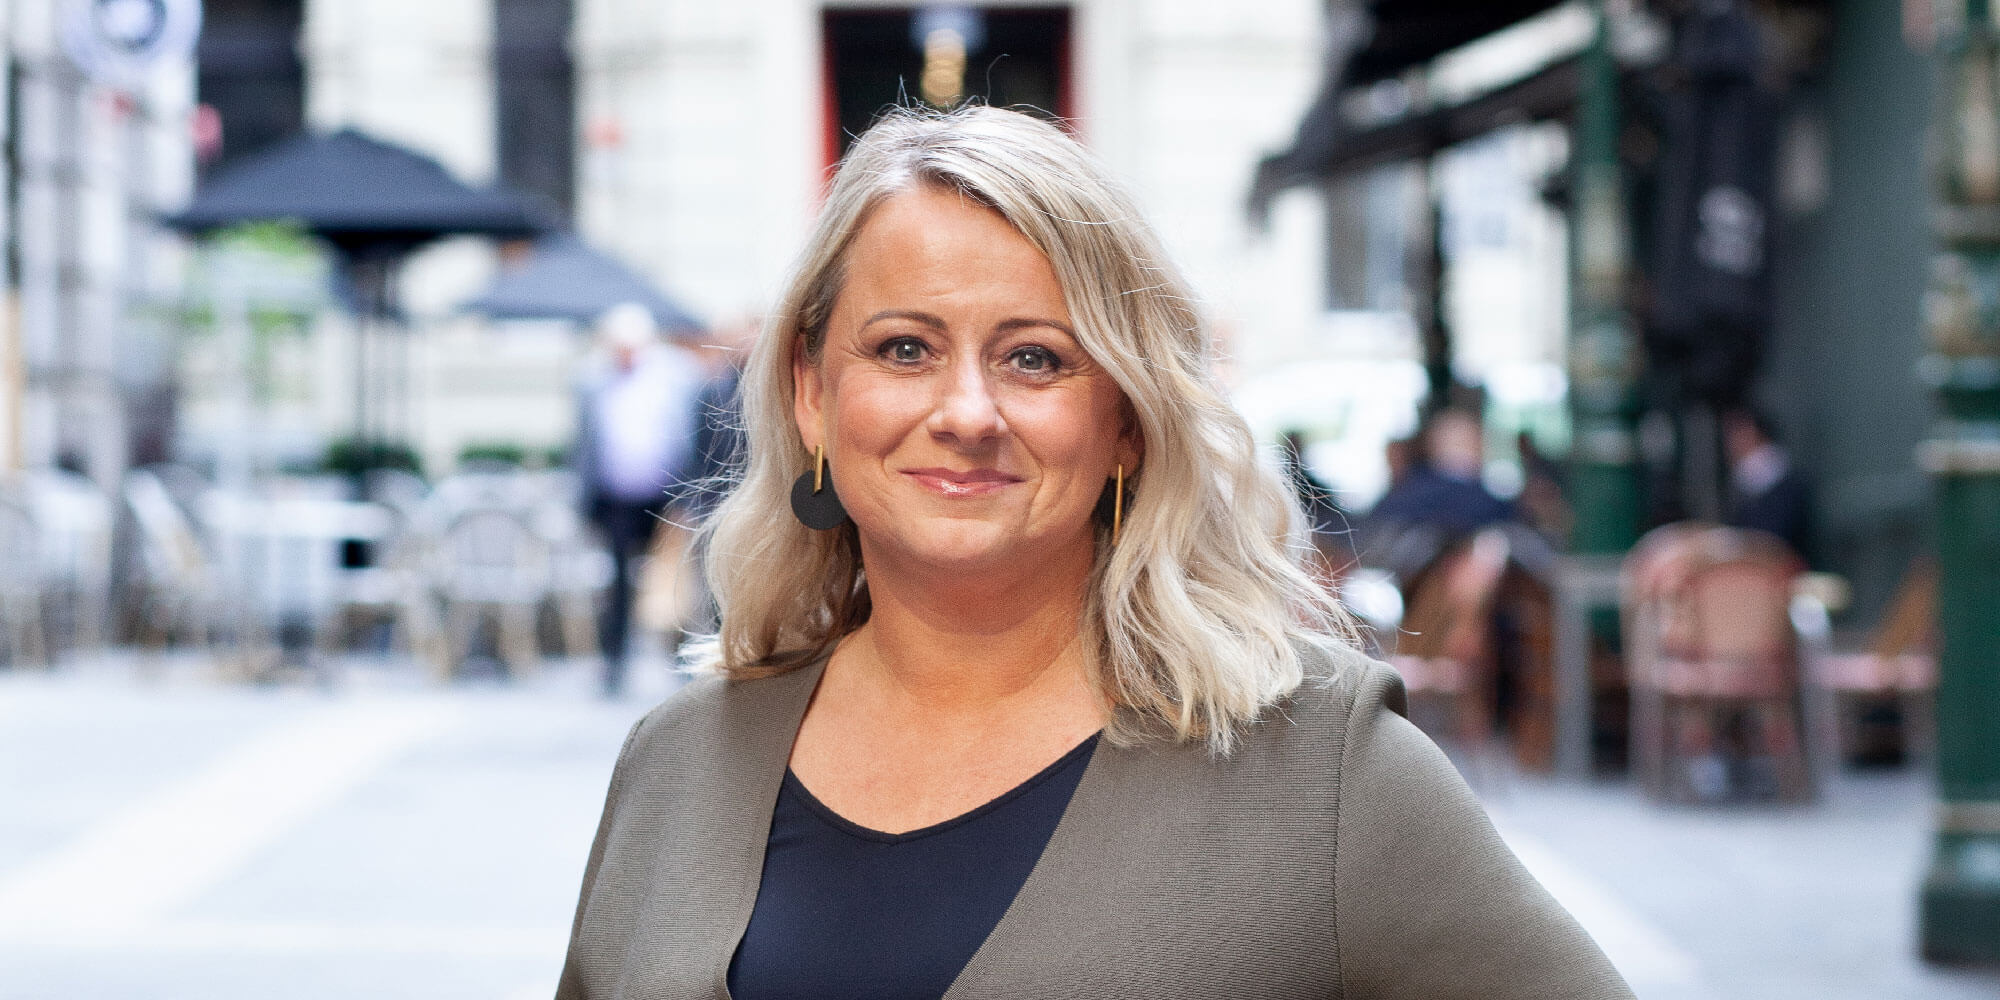 Amanda Alter continues the Accountancy Options legacy